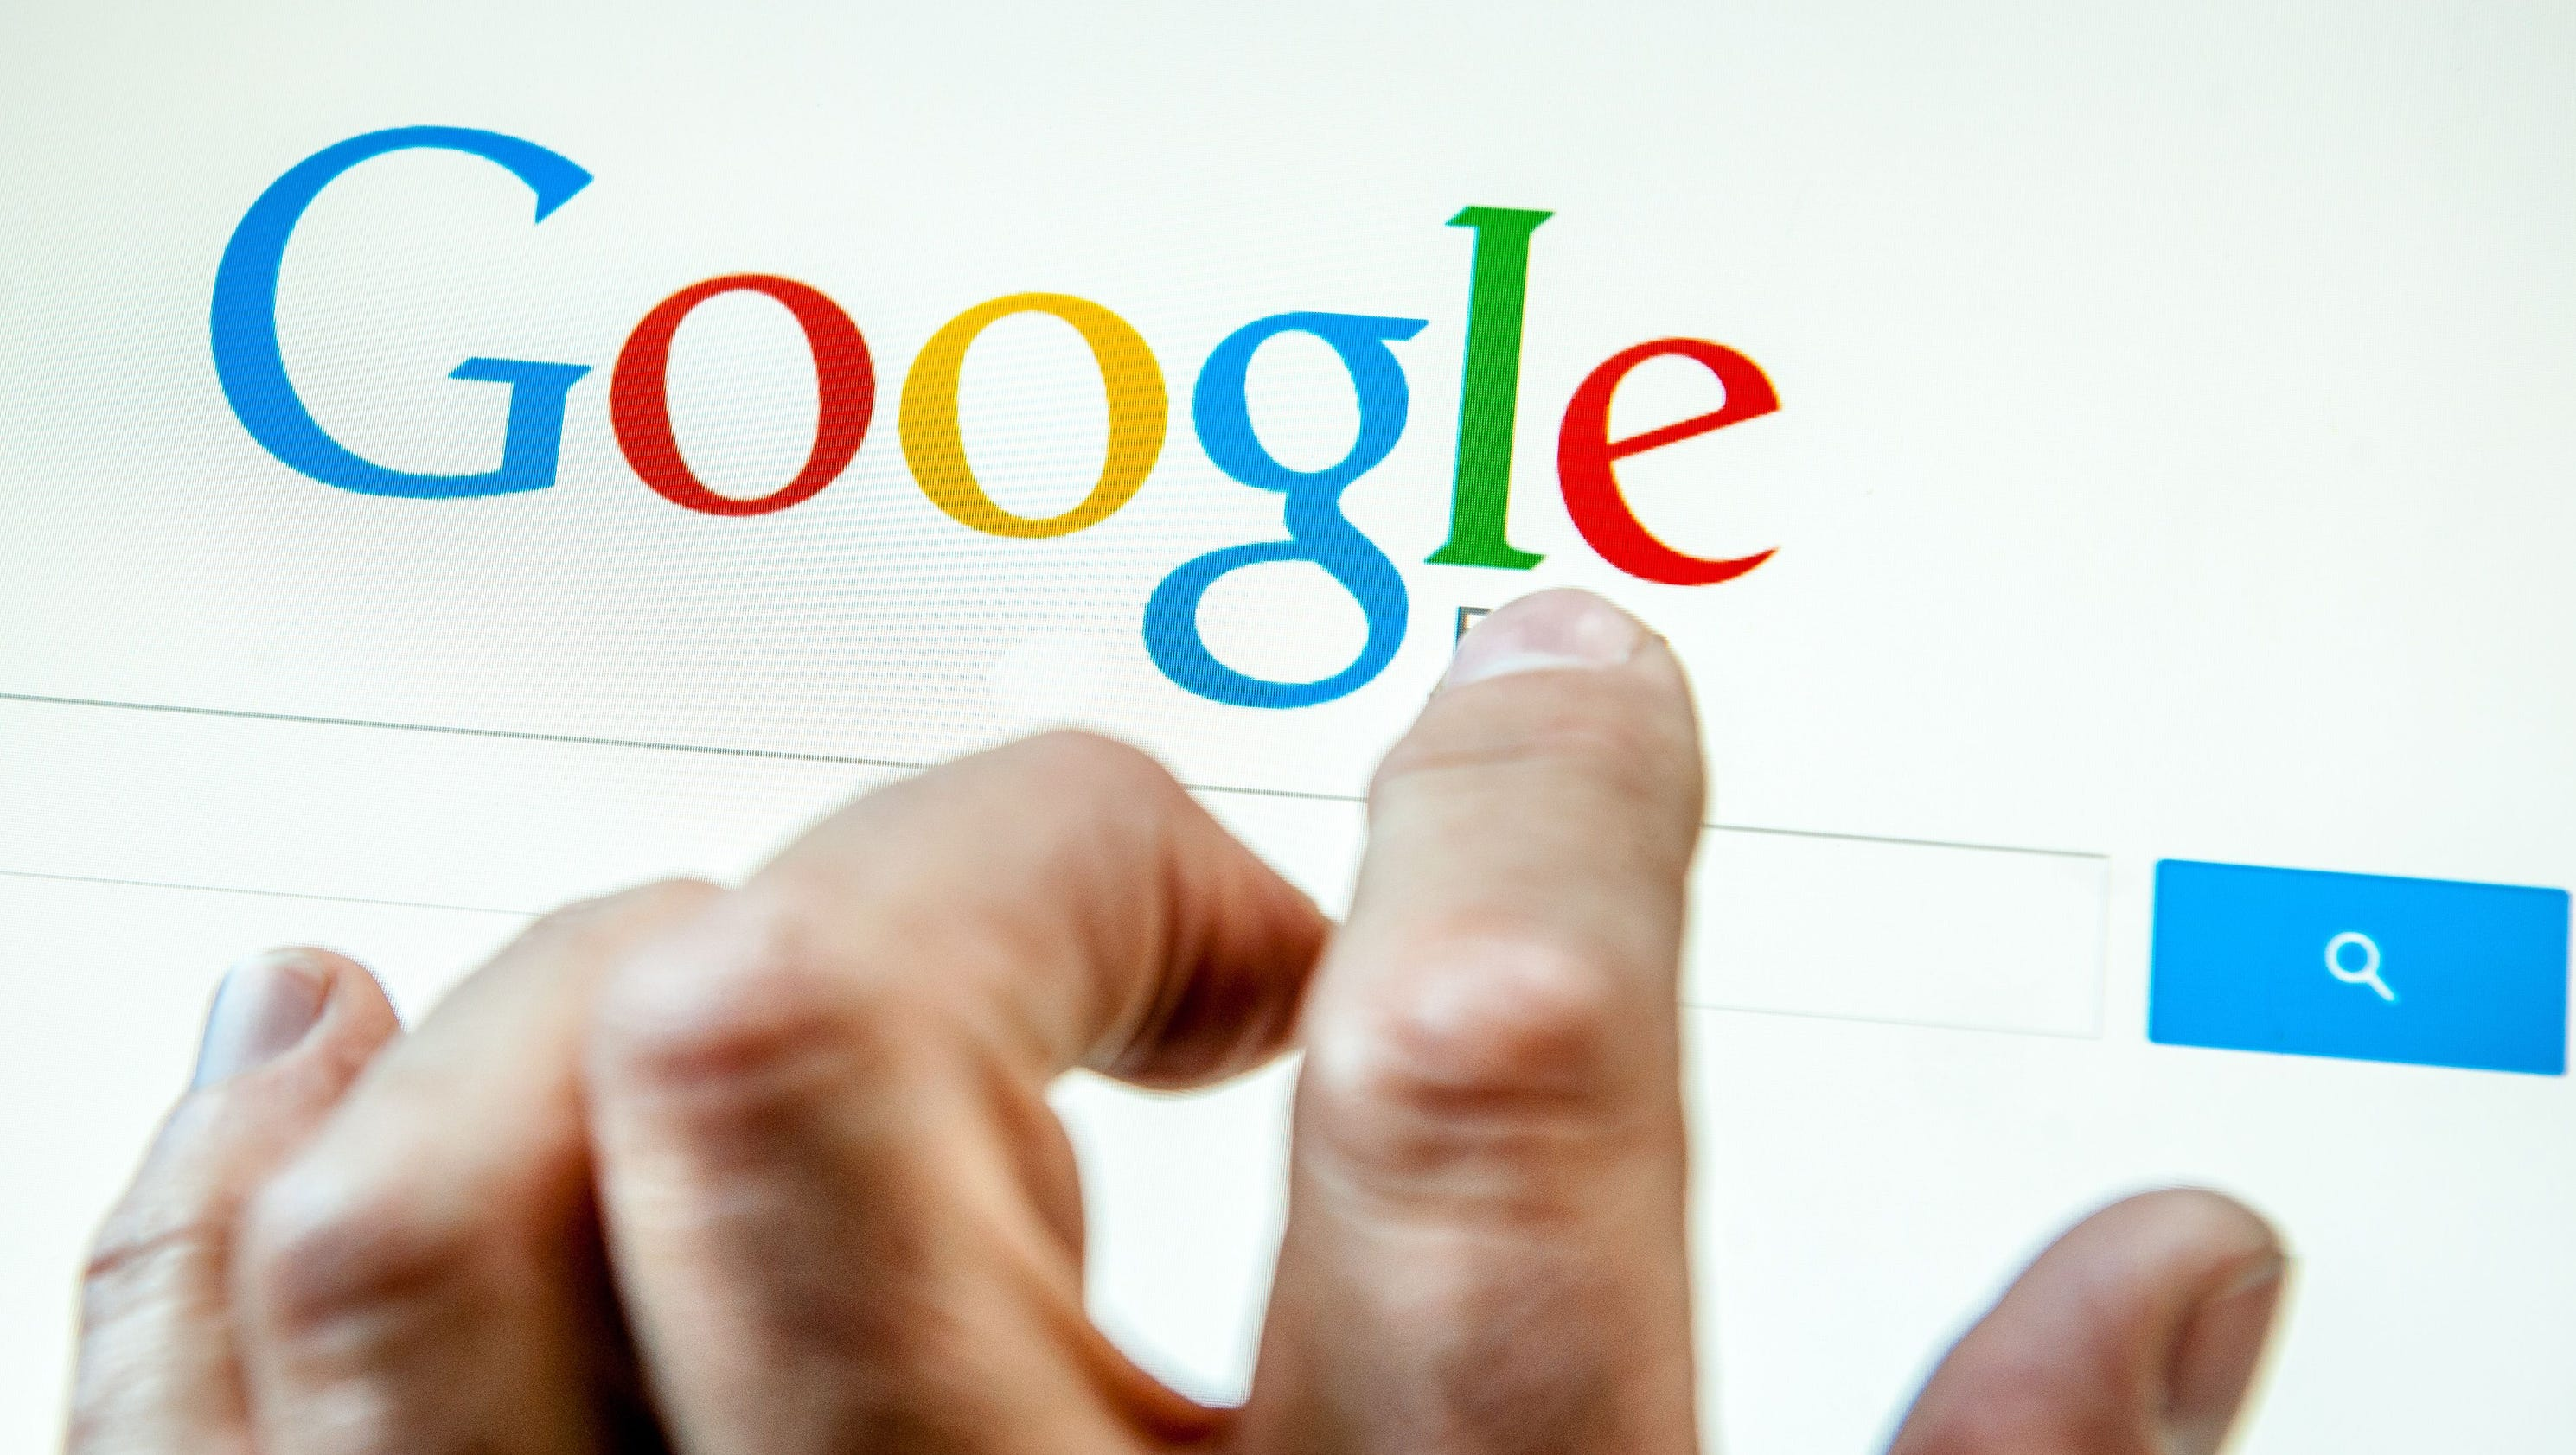 how to get top of google search results